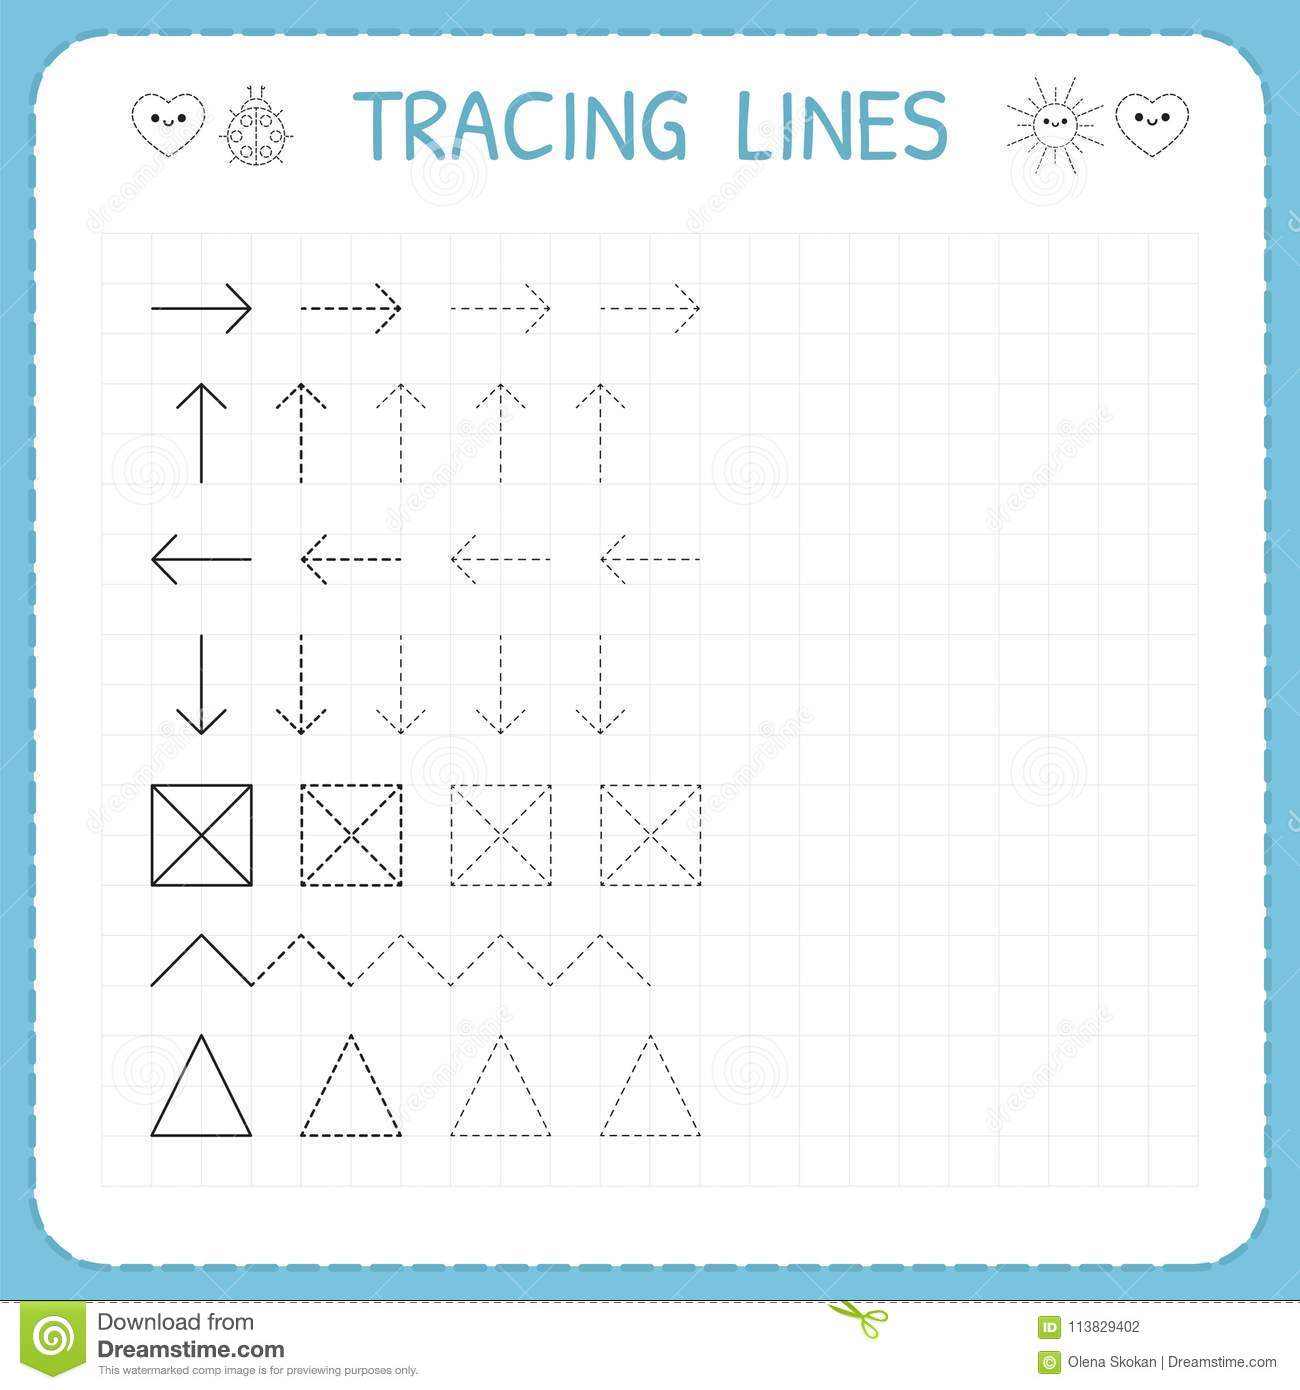 Tracing lines. Working pages for children. Preschool or kindergarten worksheets. Basic writing. Trace the pattern. Worksheet for k